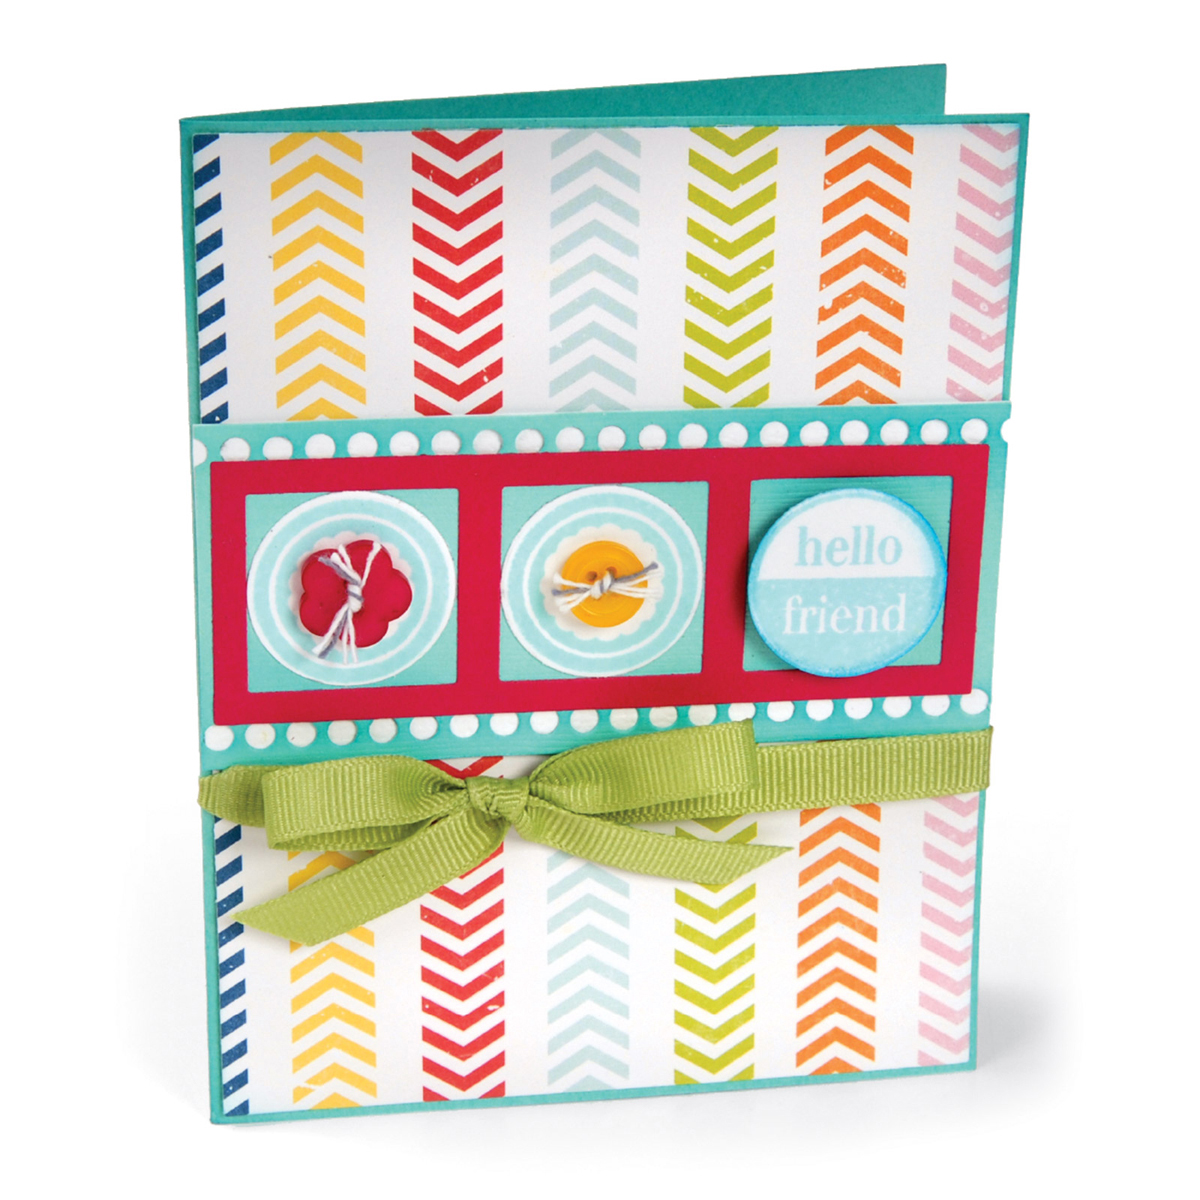 Sizzix Friendly Phrases Framelits Dies with Stamps by Stephanie Barnard, 2-Pack Multi-Colored